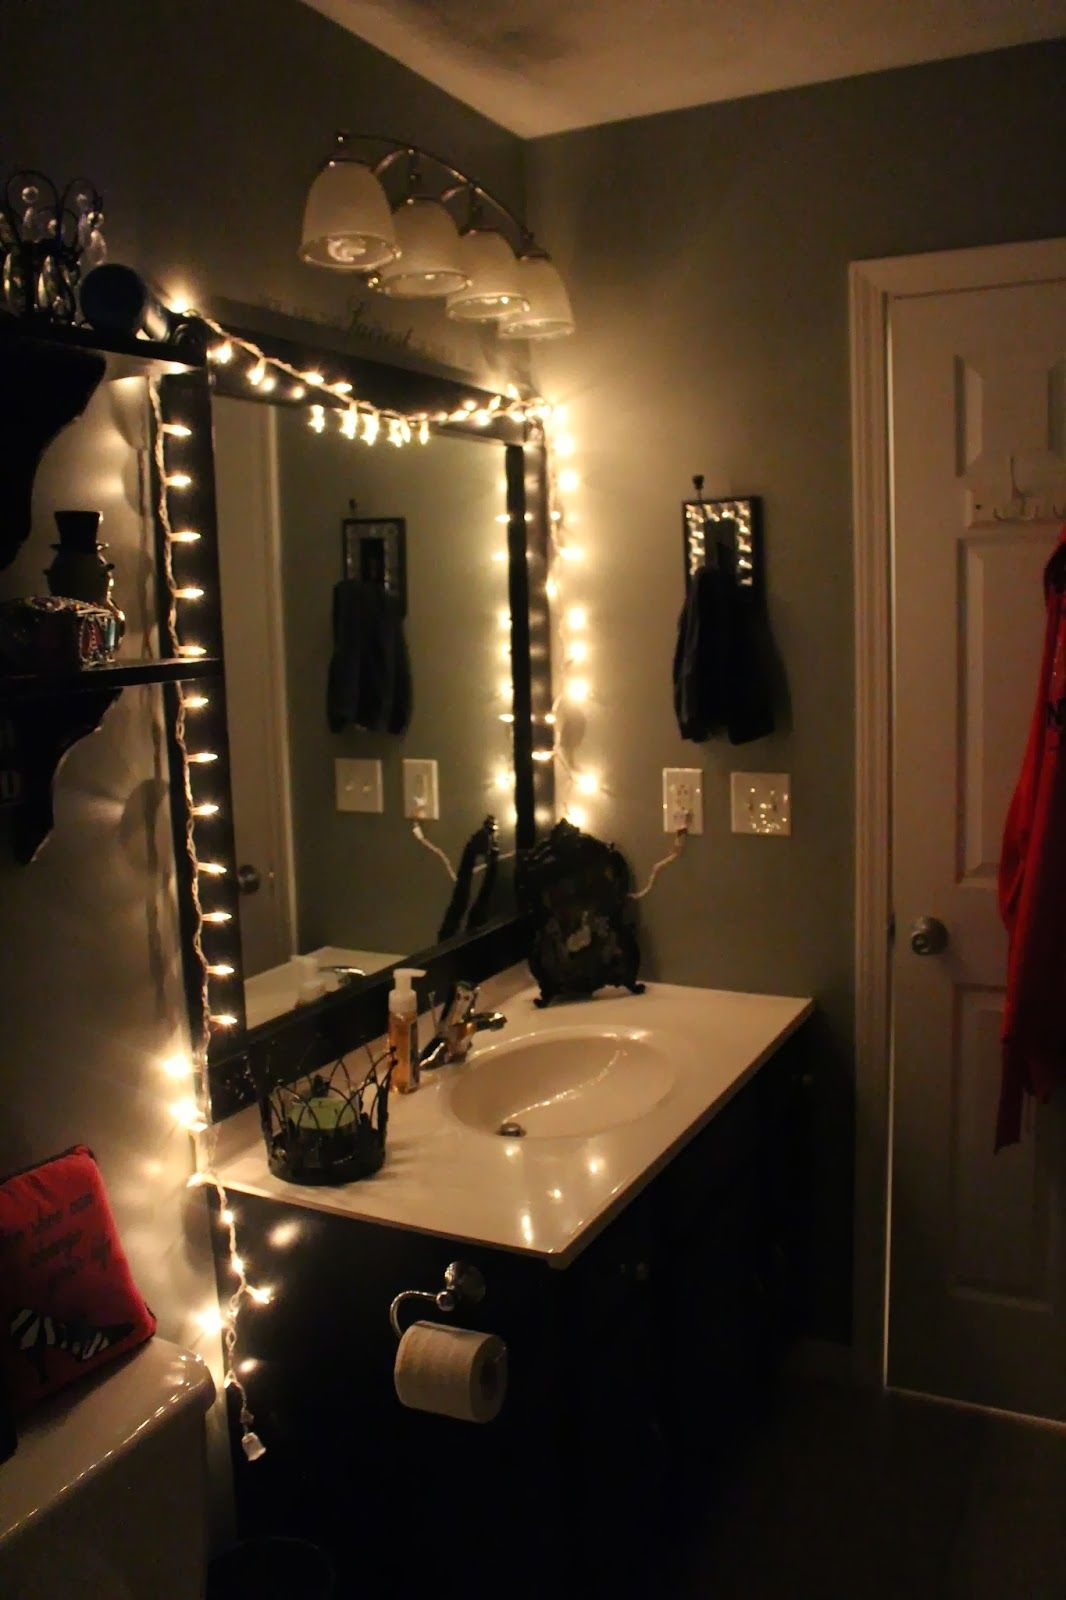 Bathroom Rennovation Black And White Christmas Lights Womens